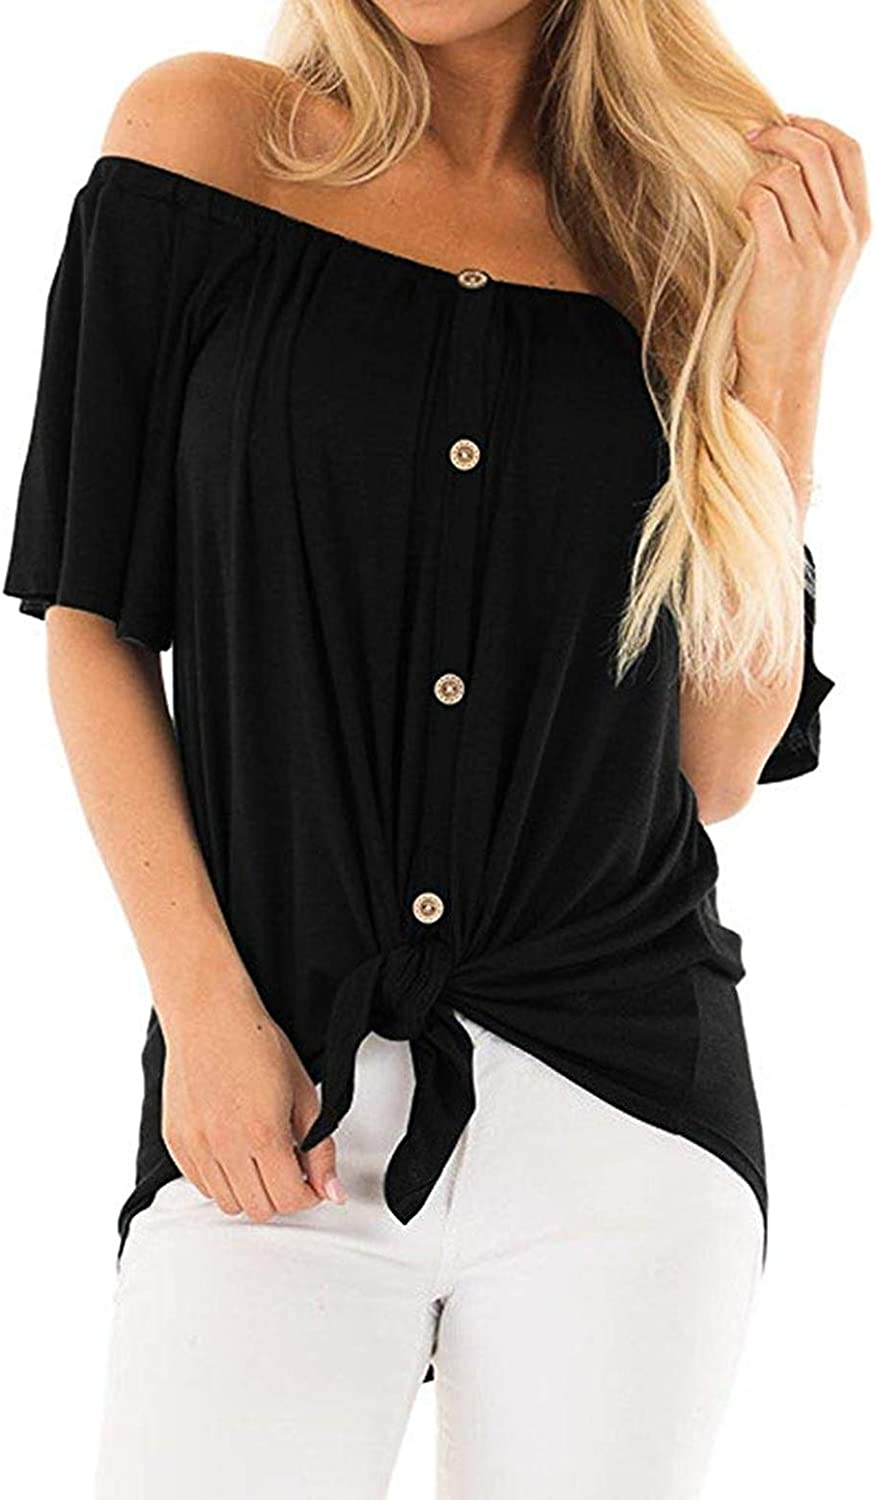 RULISHE Womens Off The Shoulder Top Short Sleeve Button Down Tie Front Knot Shirt Tunic Blouse